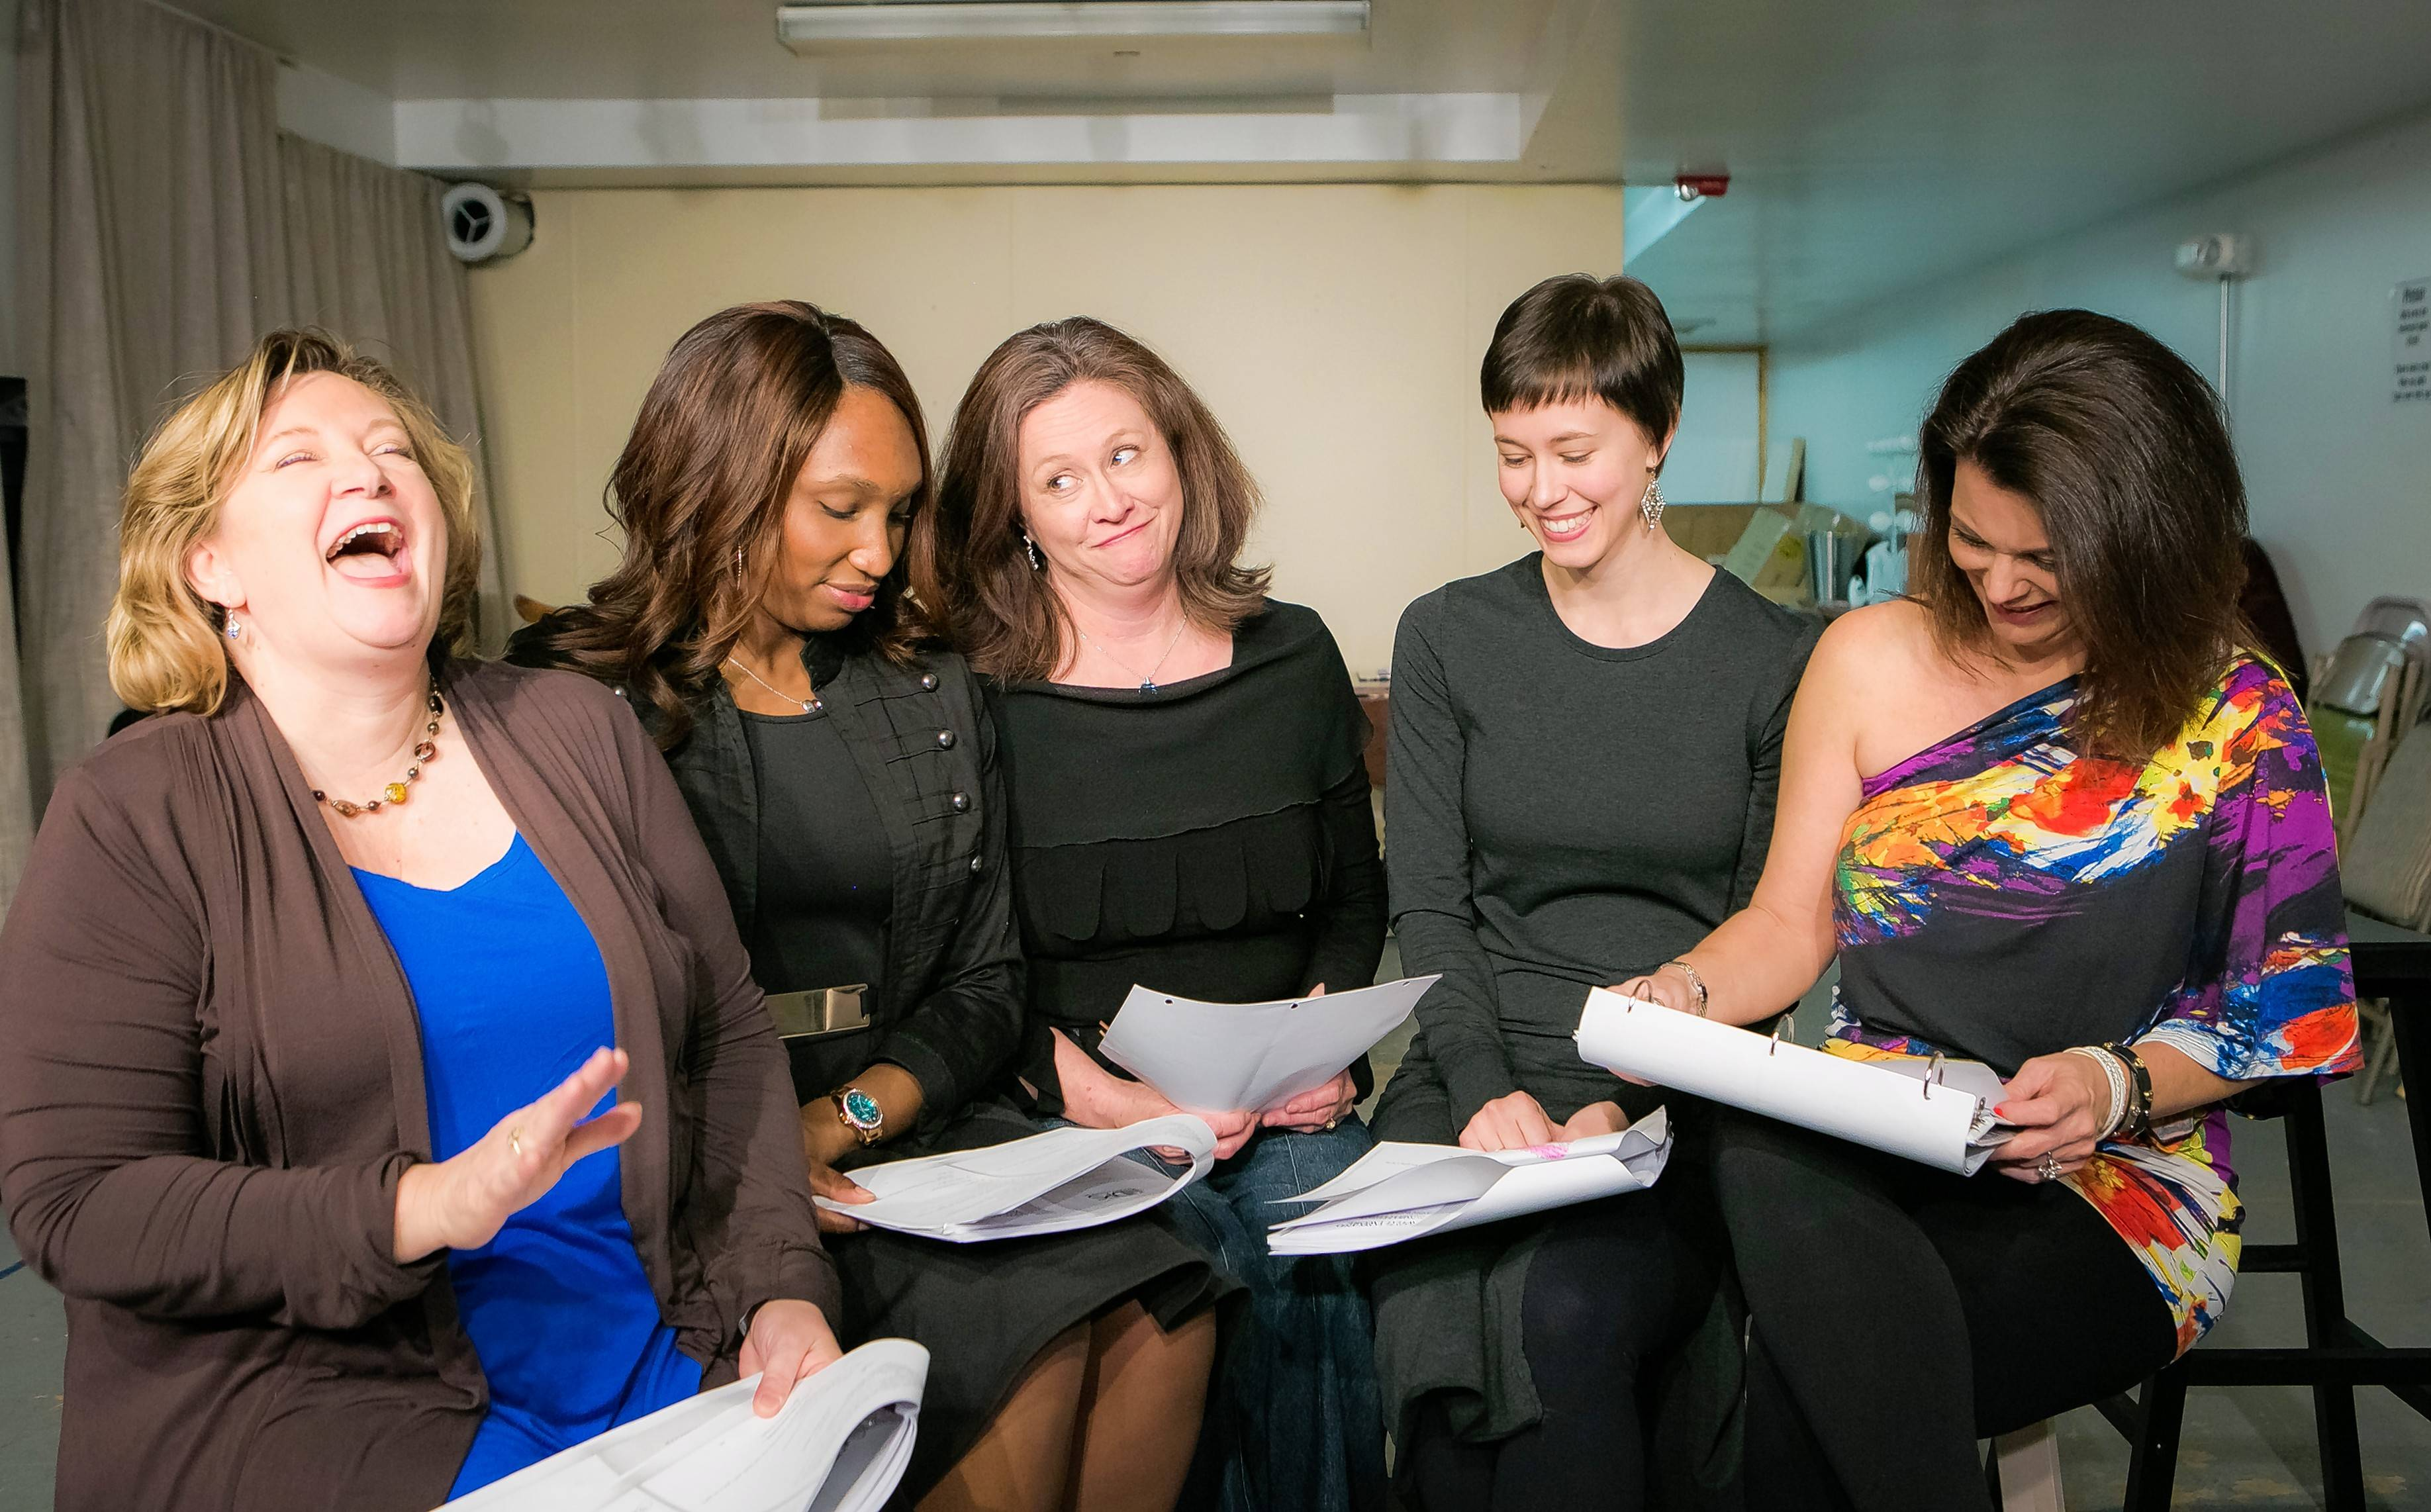 Nicola Howard, From Left, Gabrielle Gulledge, Anne Marie Lewis, Madeline  Bunke And